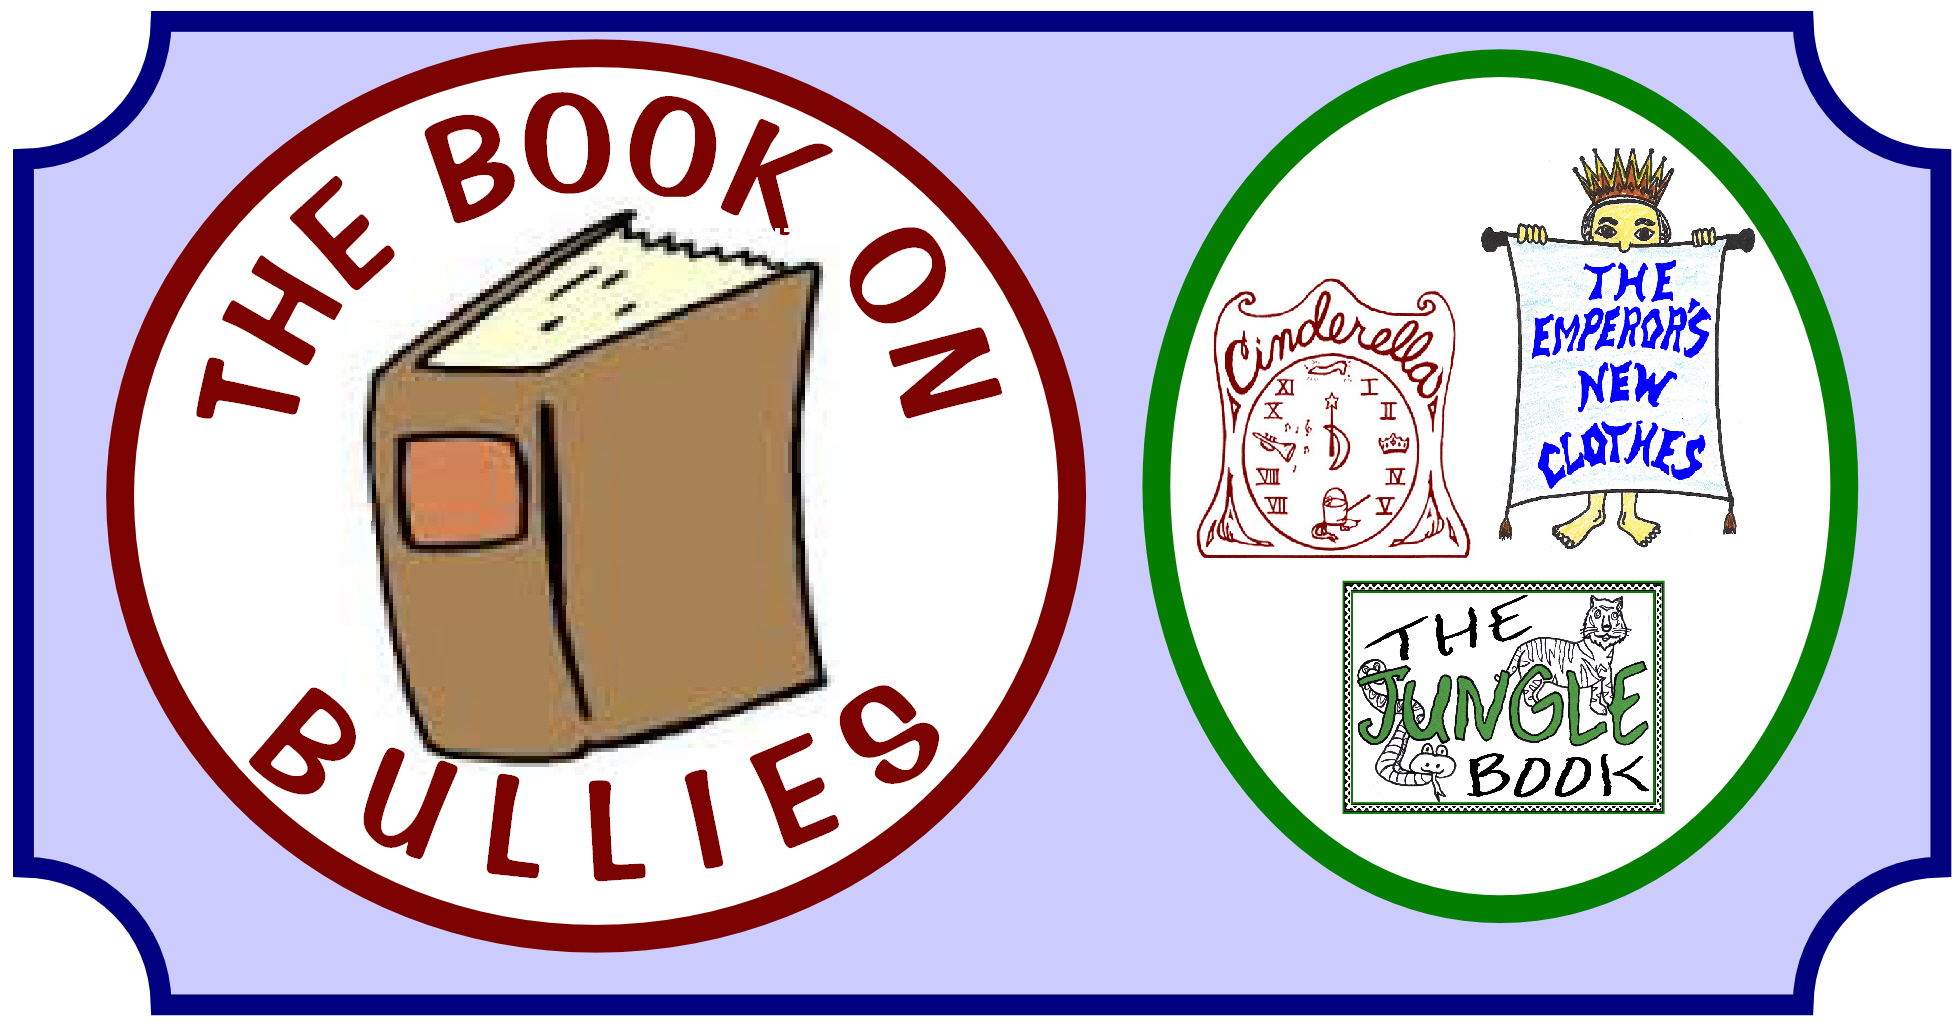 Book On Buillies Logos